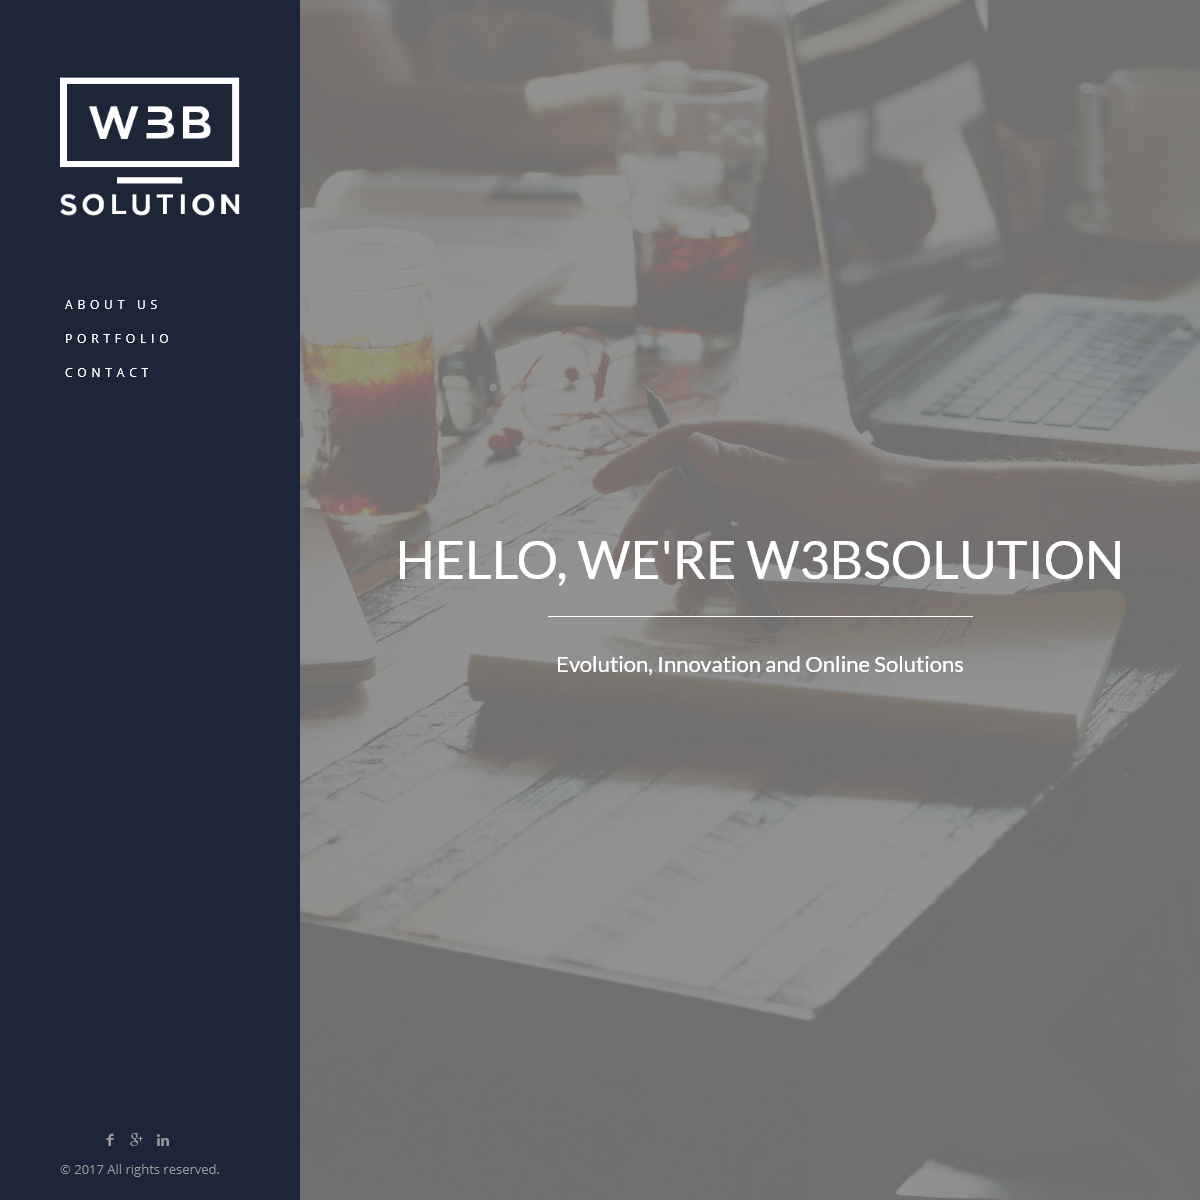 Welcome to W3BSolution - W3BSolution